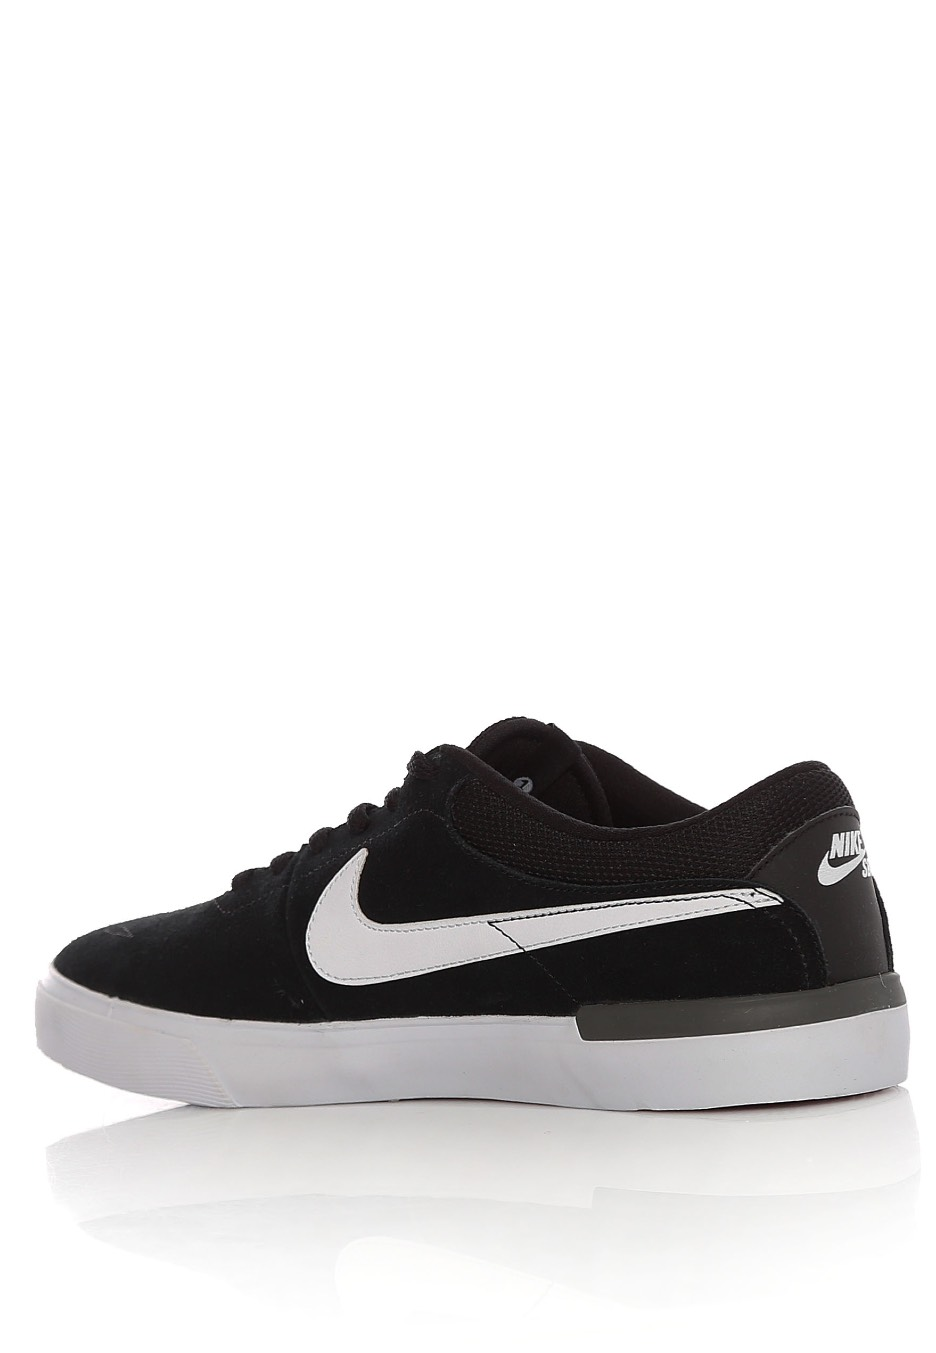 ... Nike - SB Koston Hypervulc Black White Dark Grey - Shoes ... bd336a65c